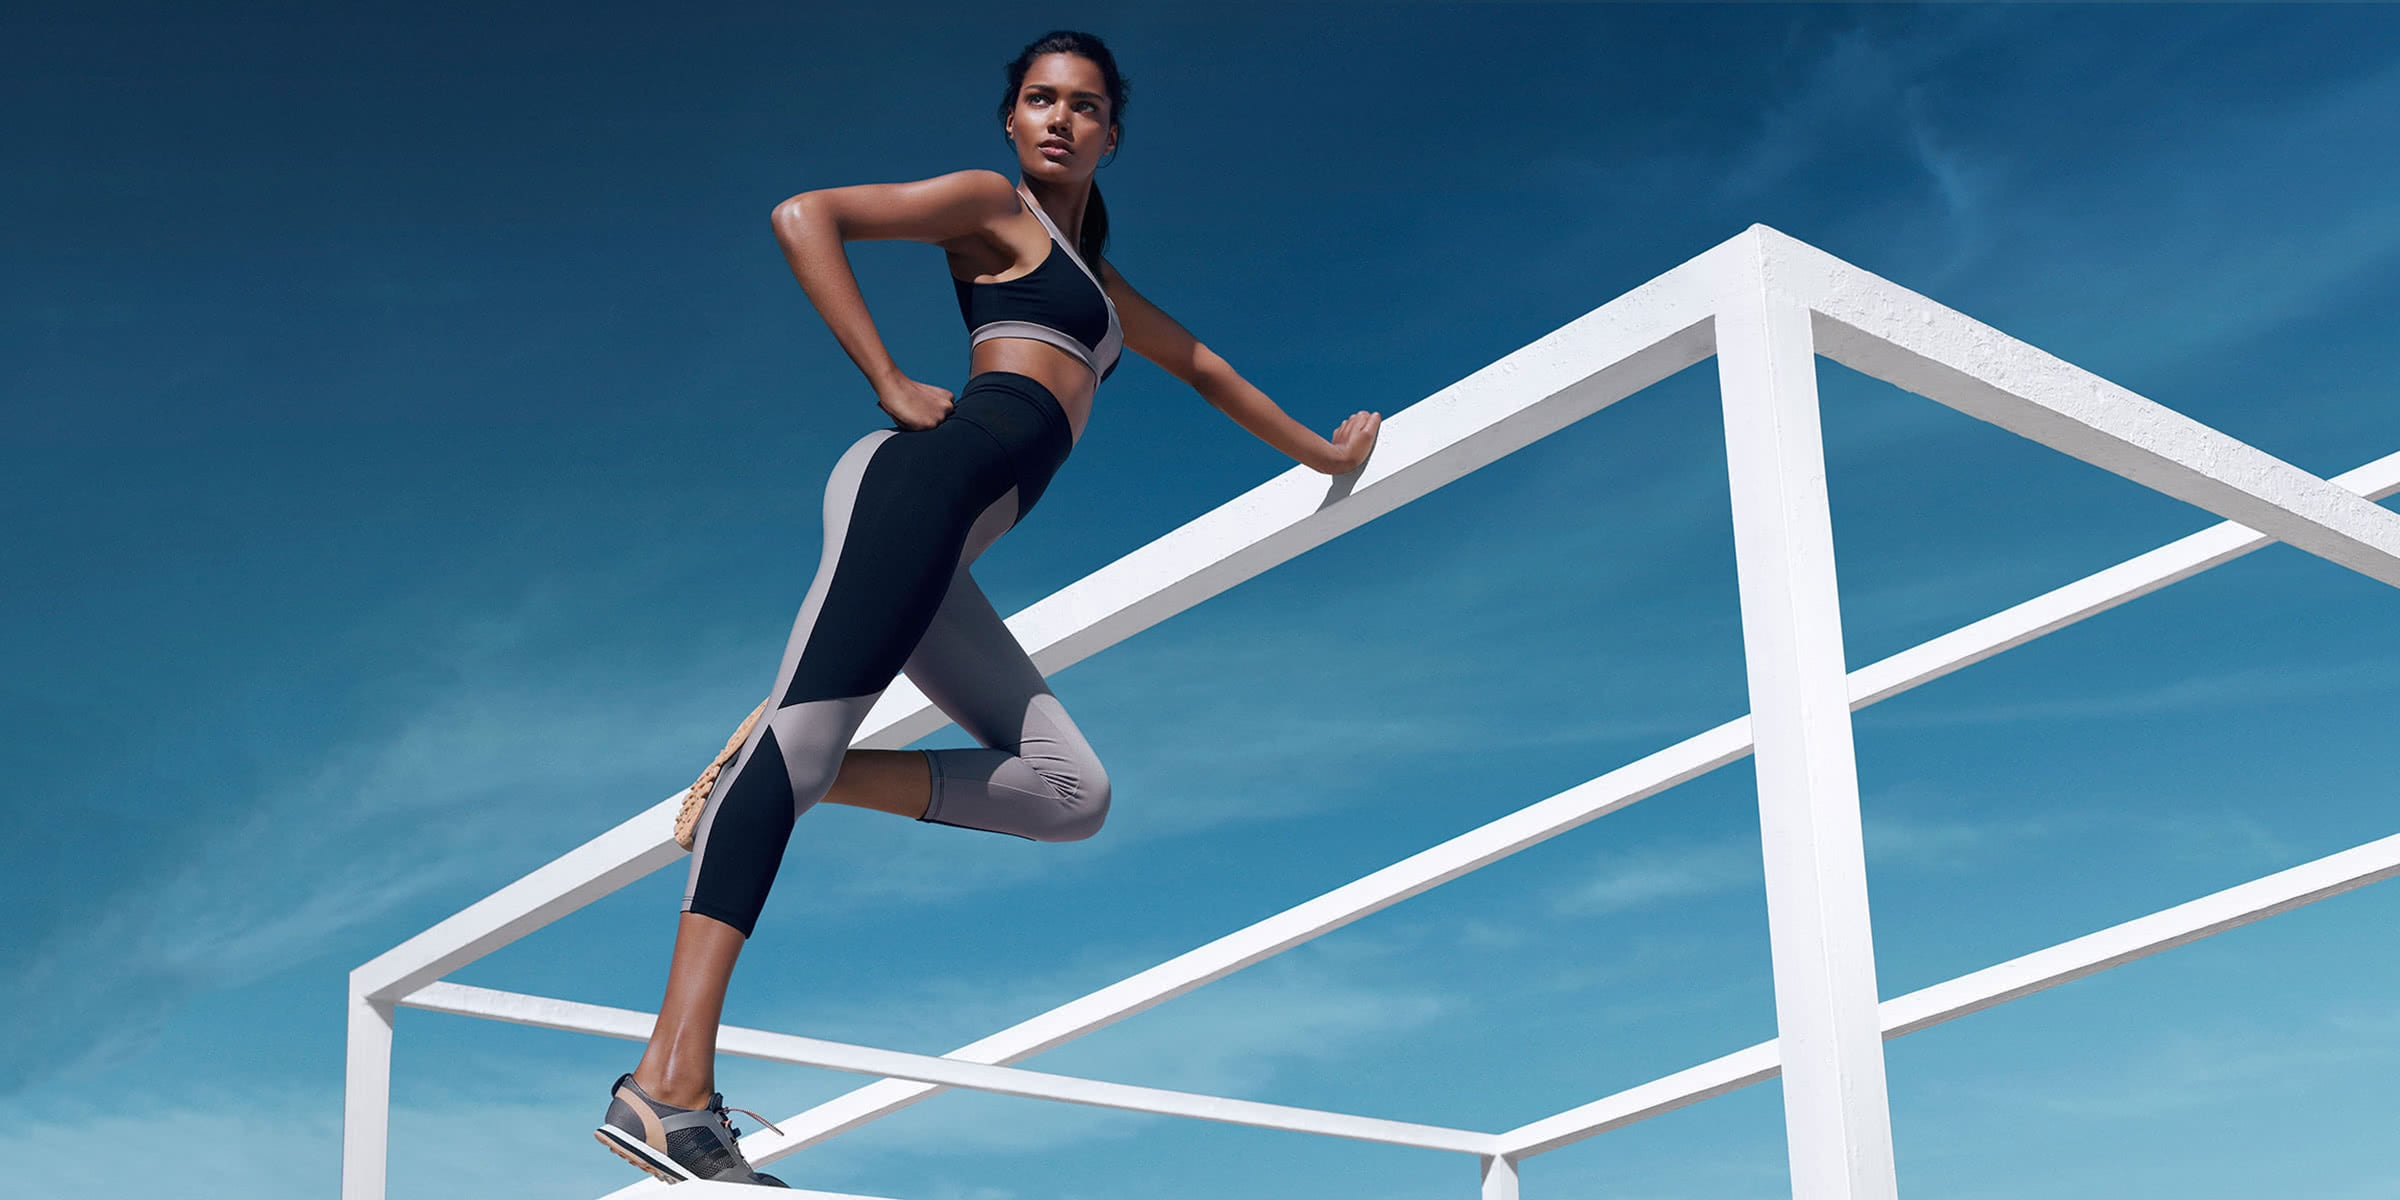 b6b650861f0 31 Best Women Activewear and Luxury Athleisure Brands (2019 Updated)